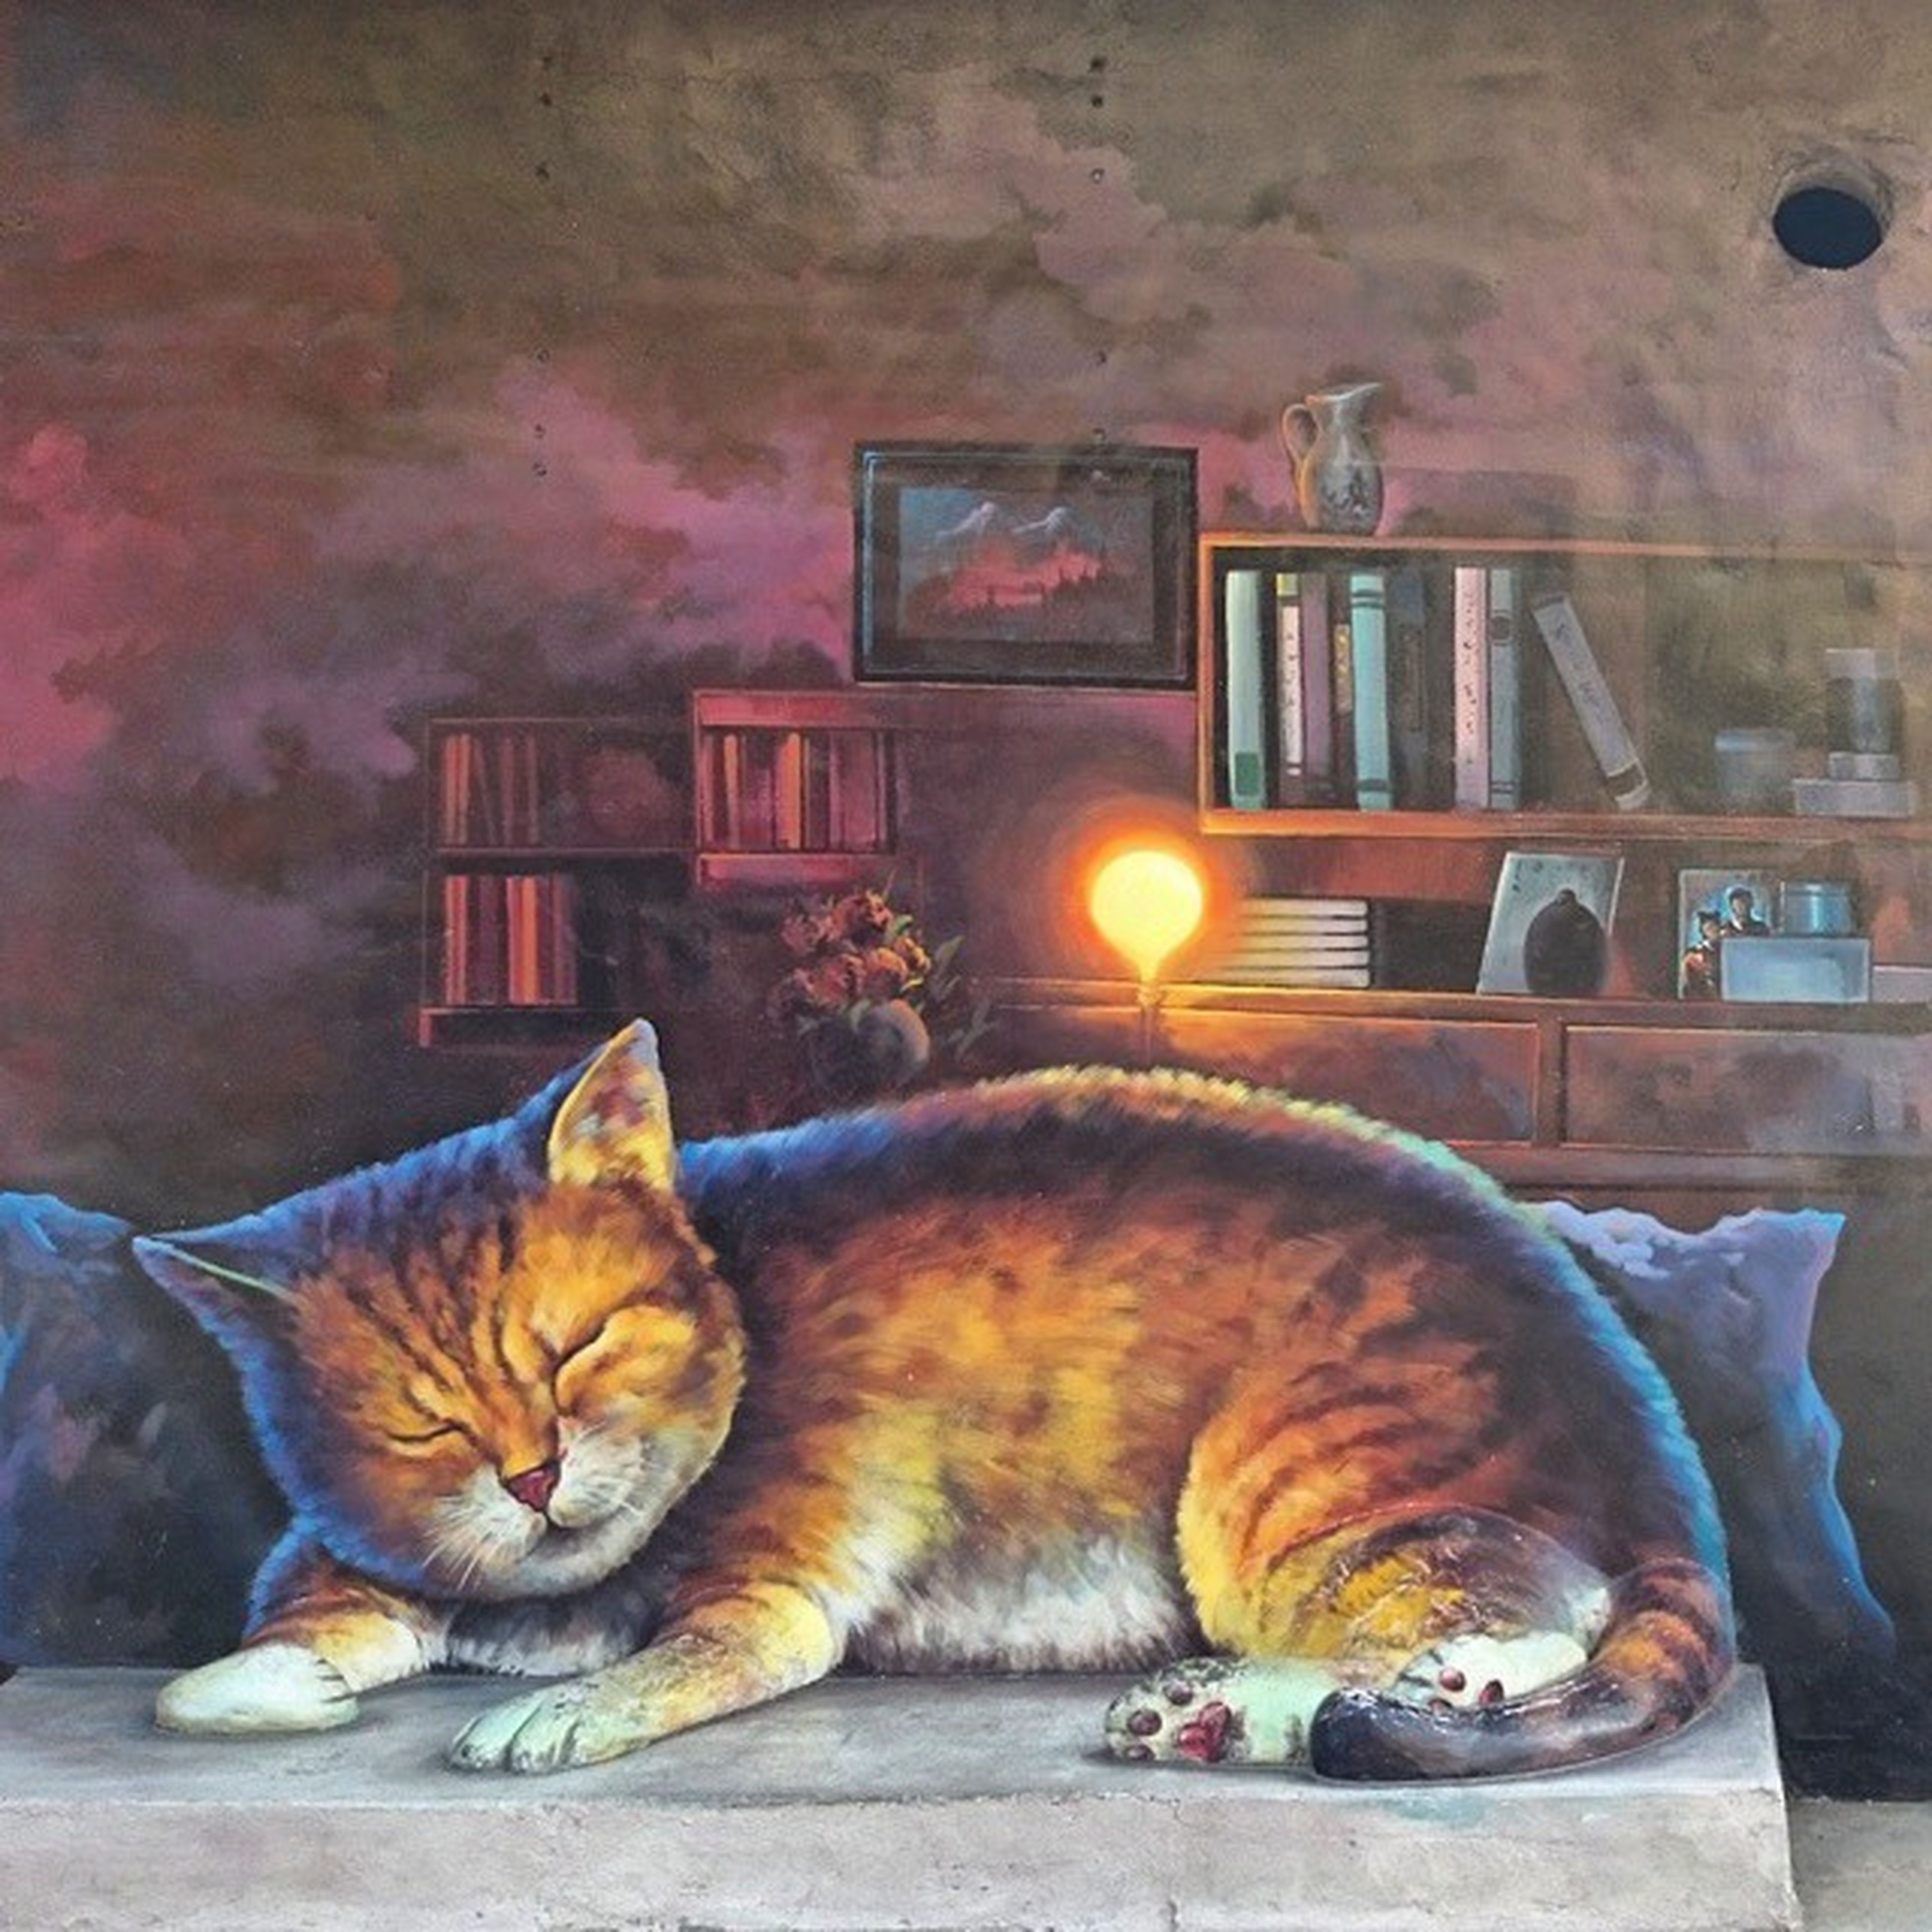 domestic animals, built structure, animal themes, architecture, building exterior, one animal, domestic cat, pets, mammal, house, cat, orange color, feline, outdoors, no people, sunset, relaxation, sitting, sunlight, street